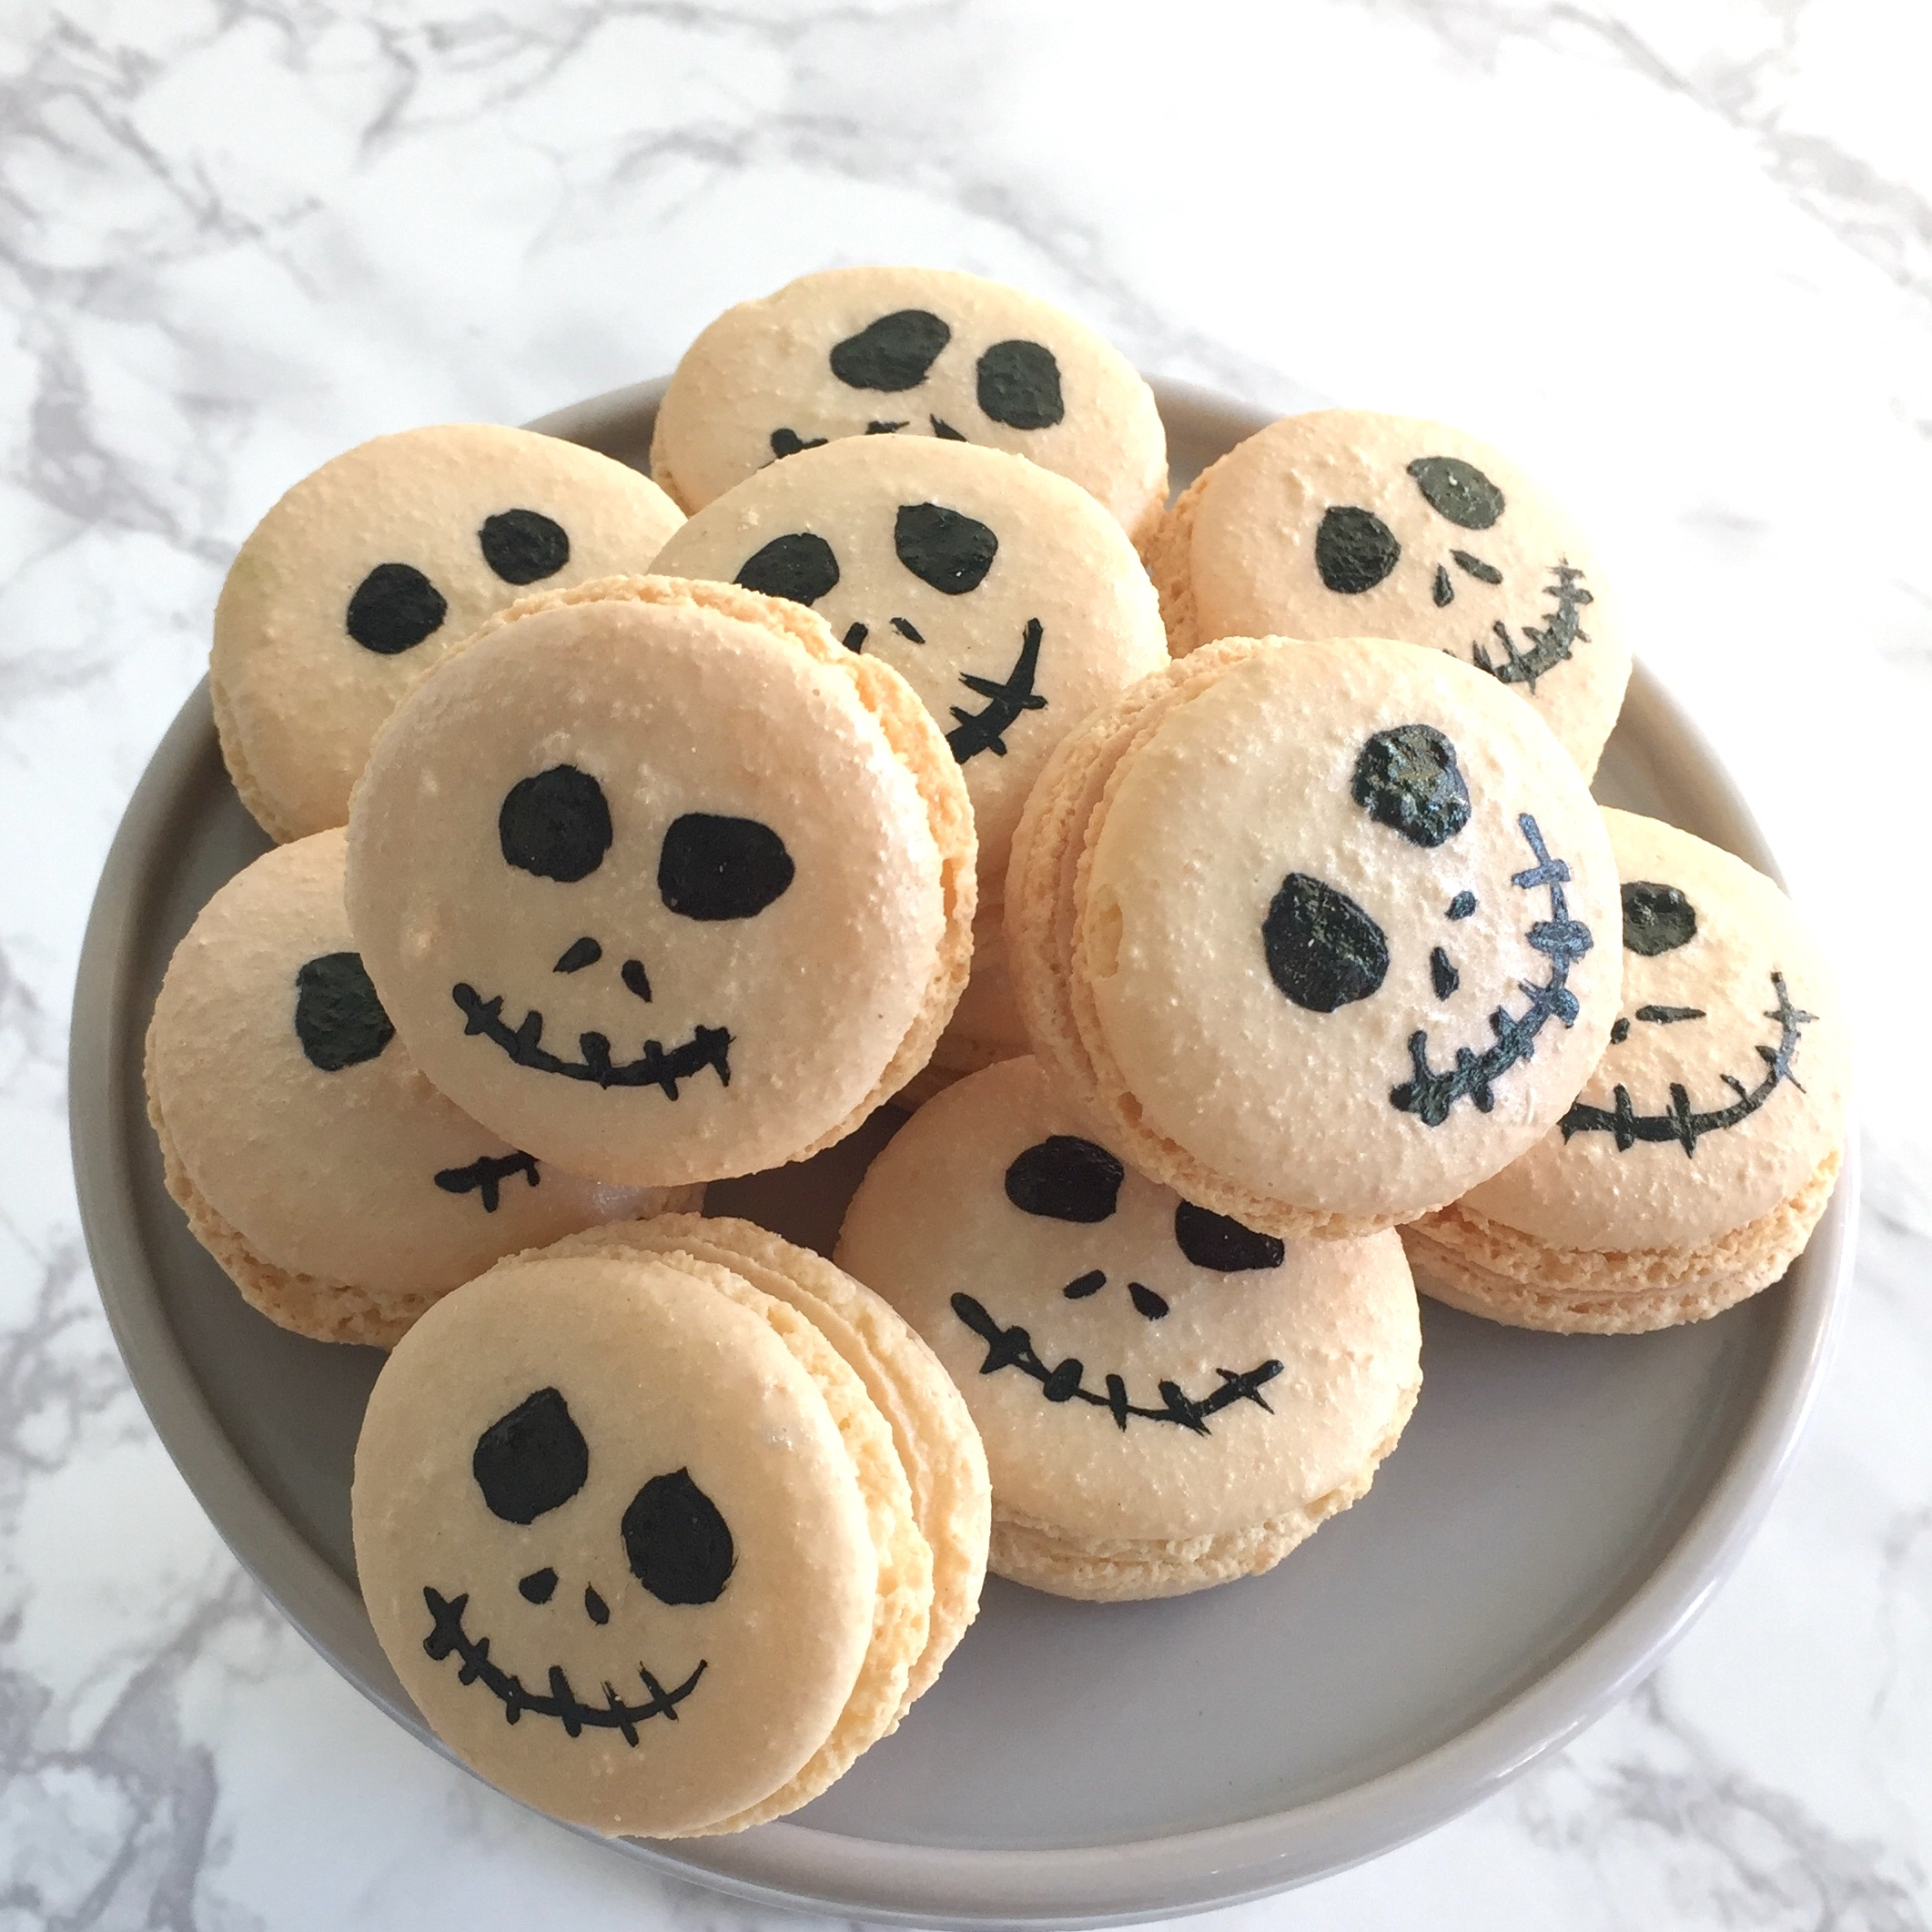 Skellington Macarons  Vanilla French Macarons ready for a spooky time!